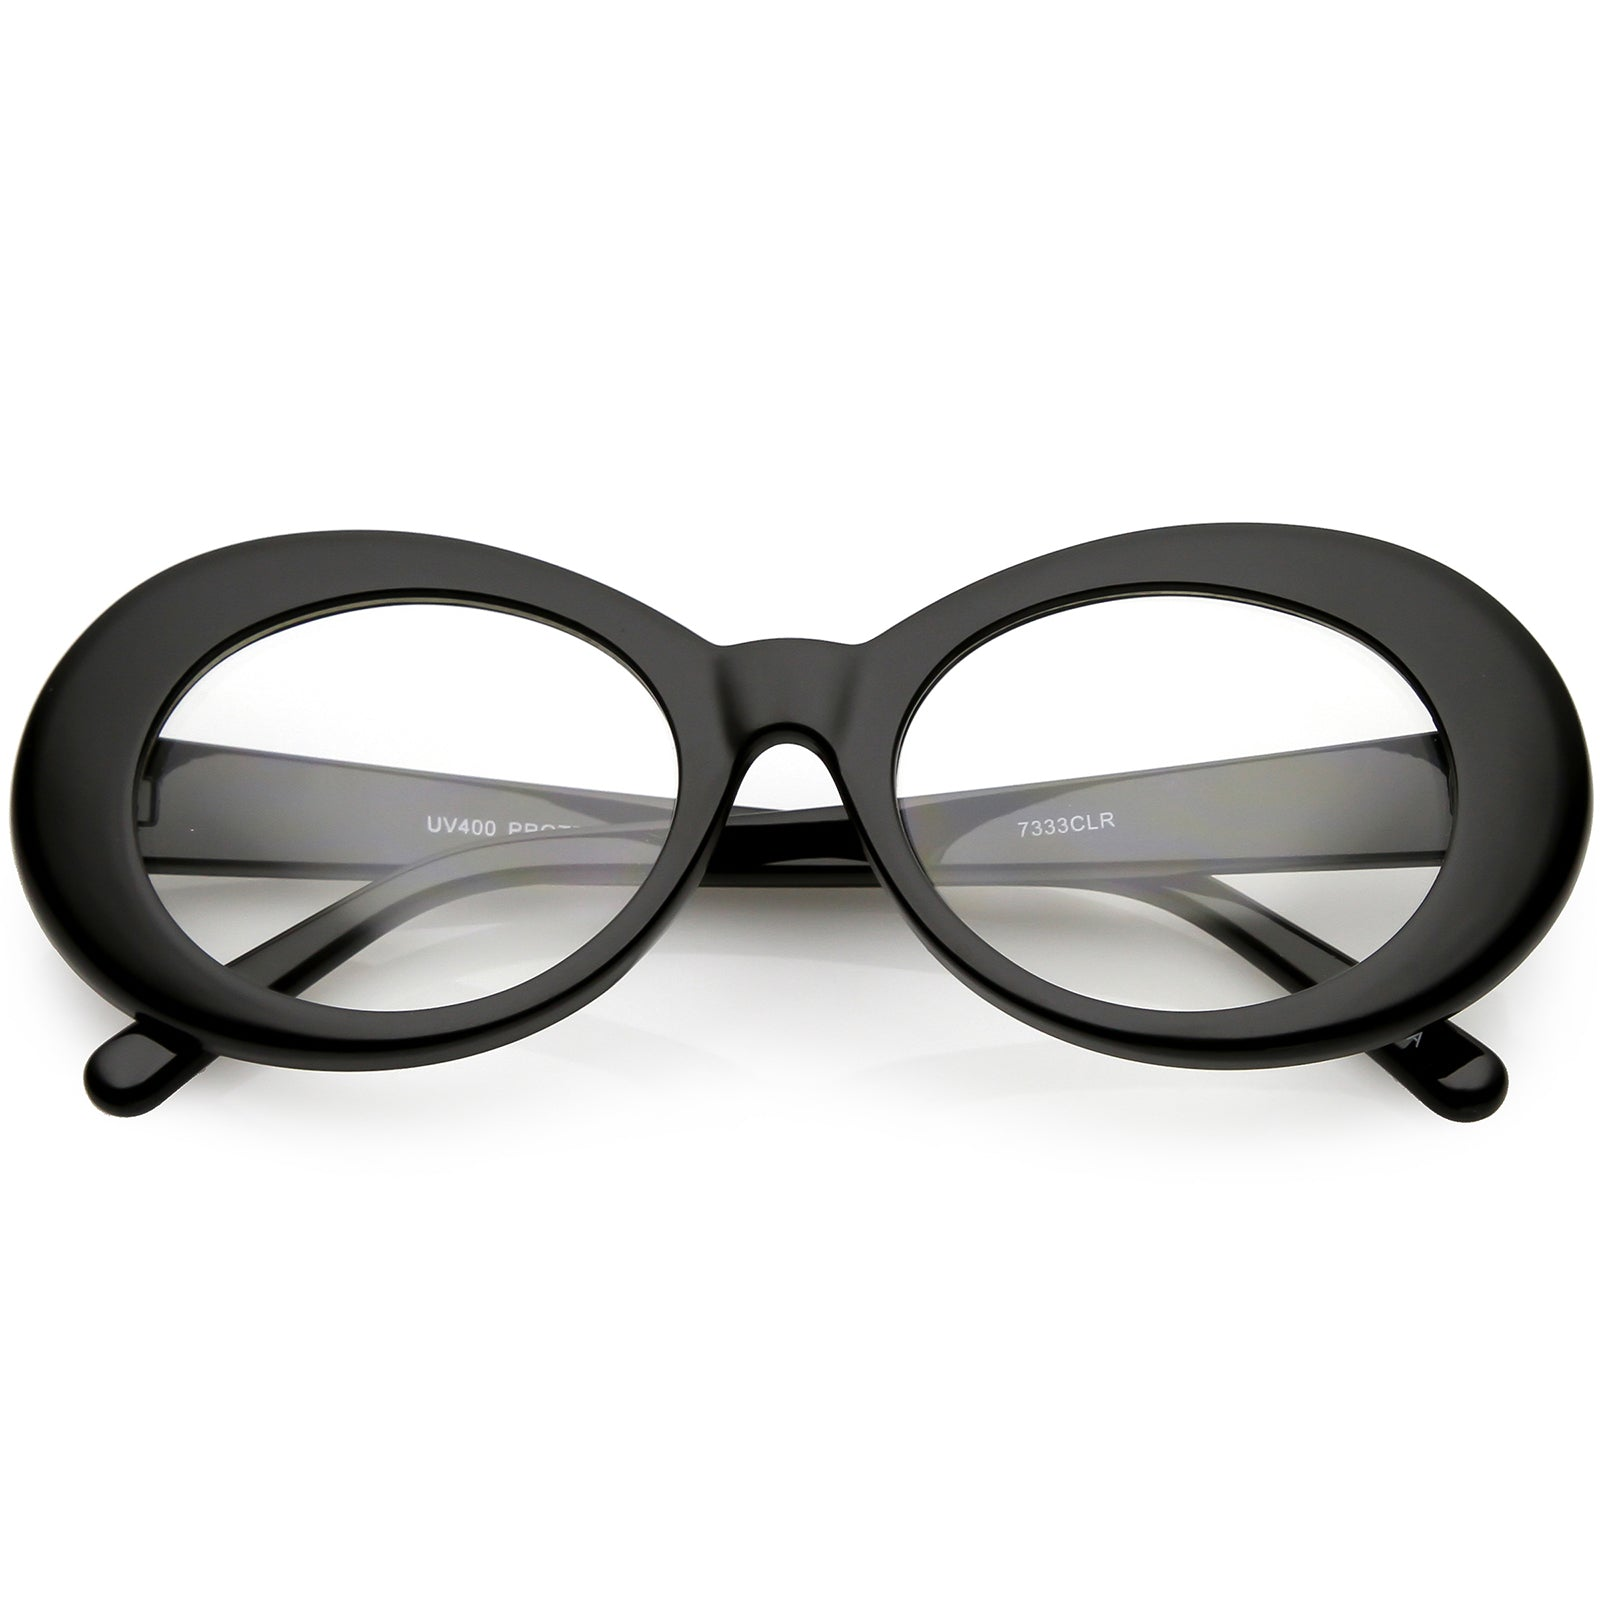 38171d9206 Large Clout Goggles Thick Oval Eyeglasses Clear Lens 53mm - sunglass.la